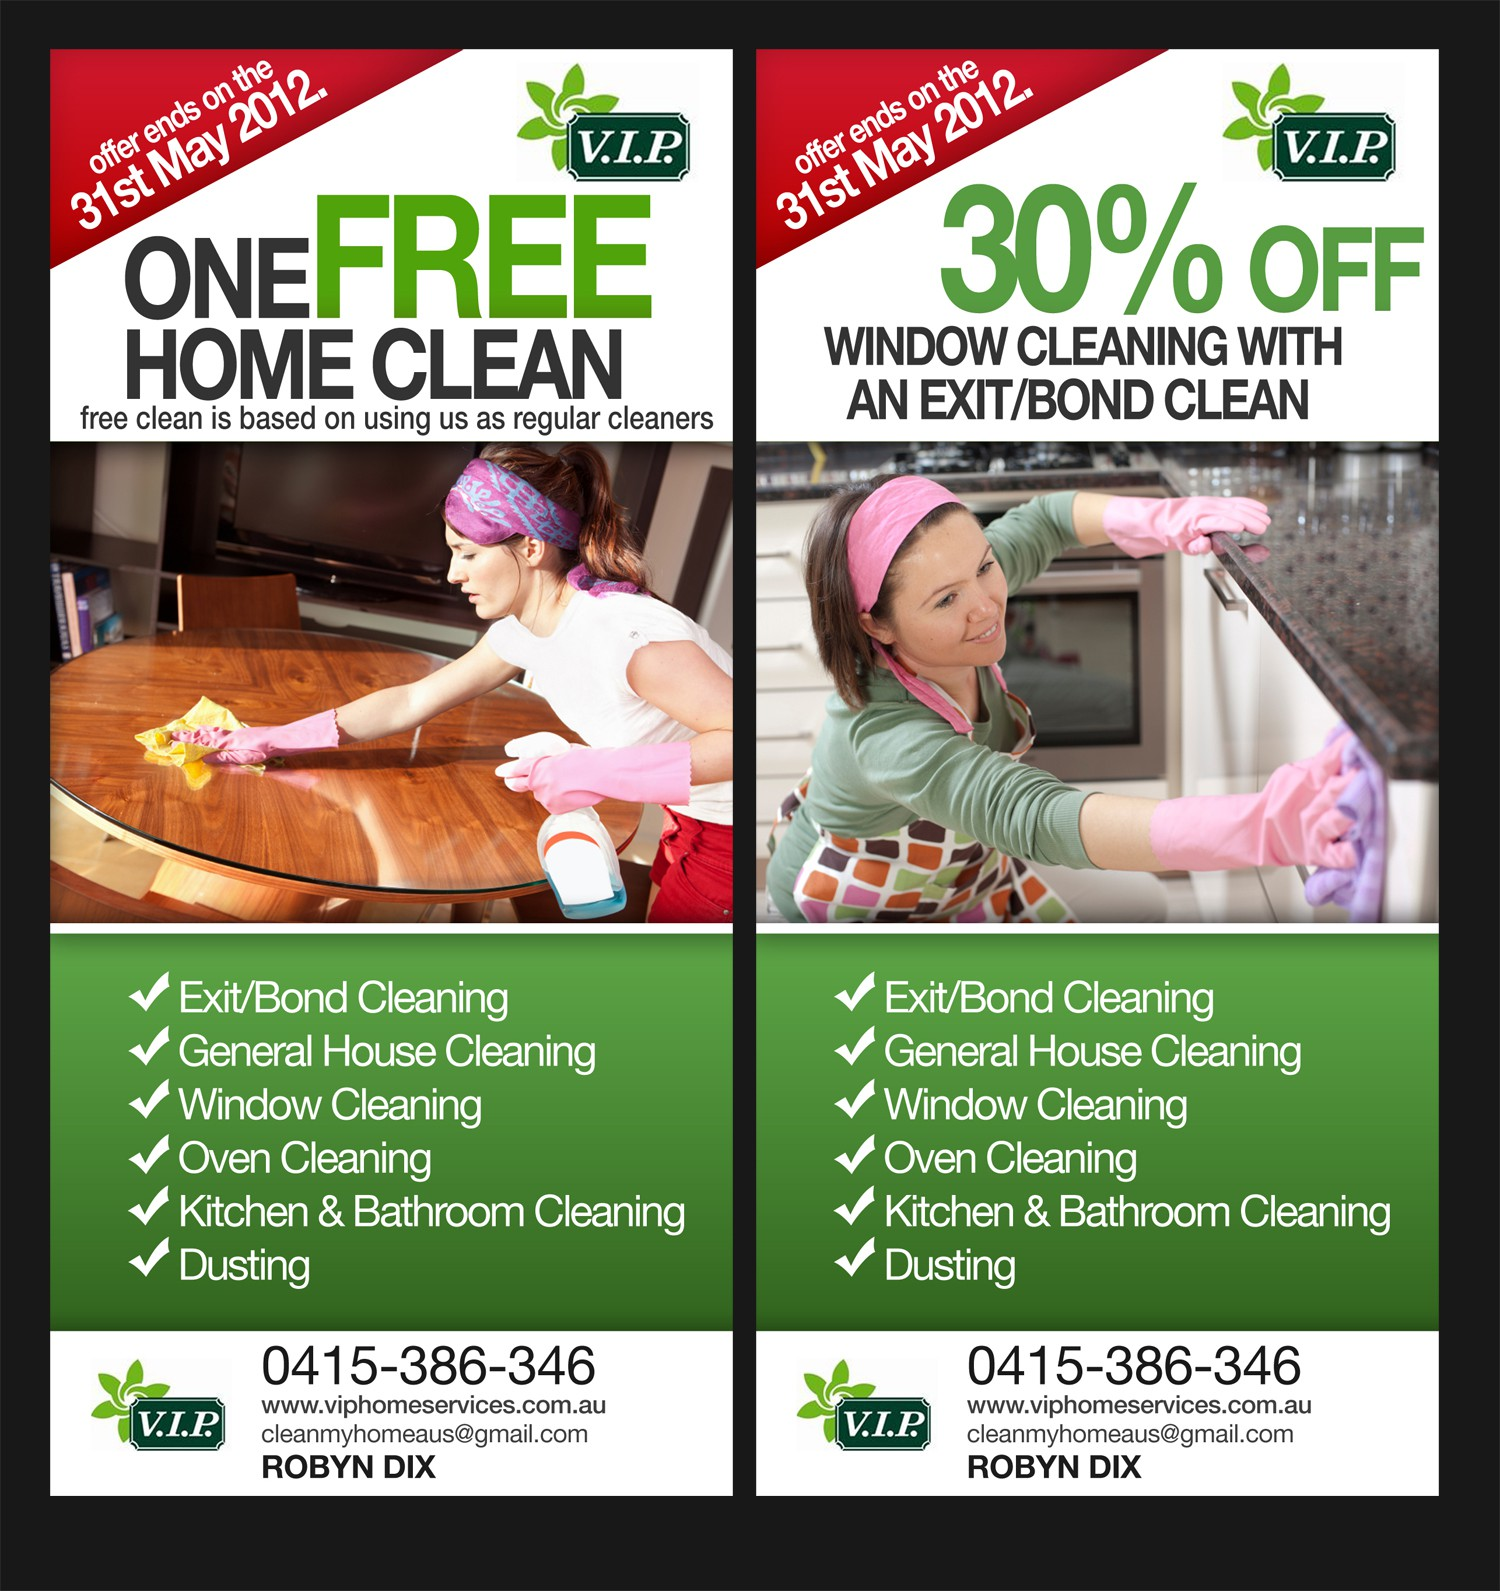 Help V.I.P Home Cleaning with a new print or packaging design